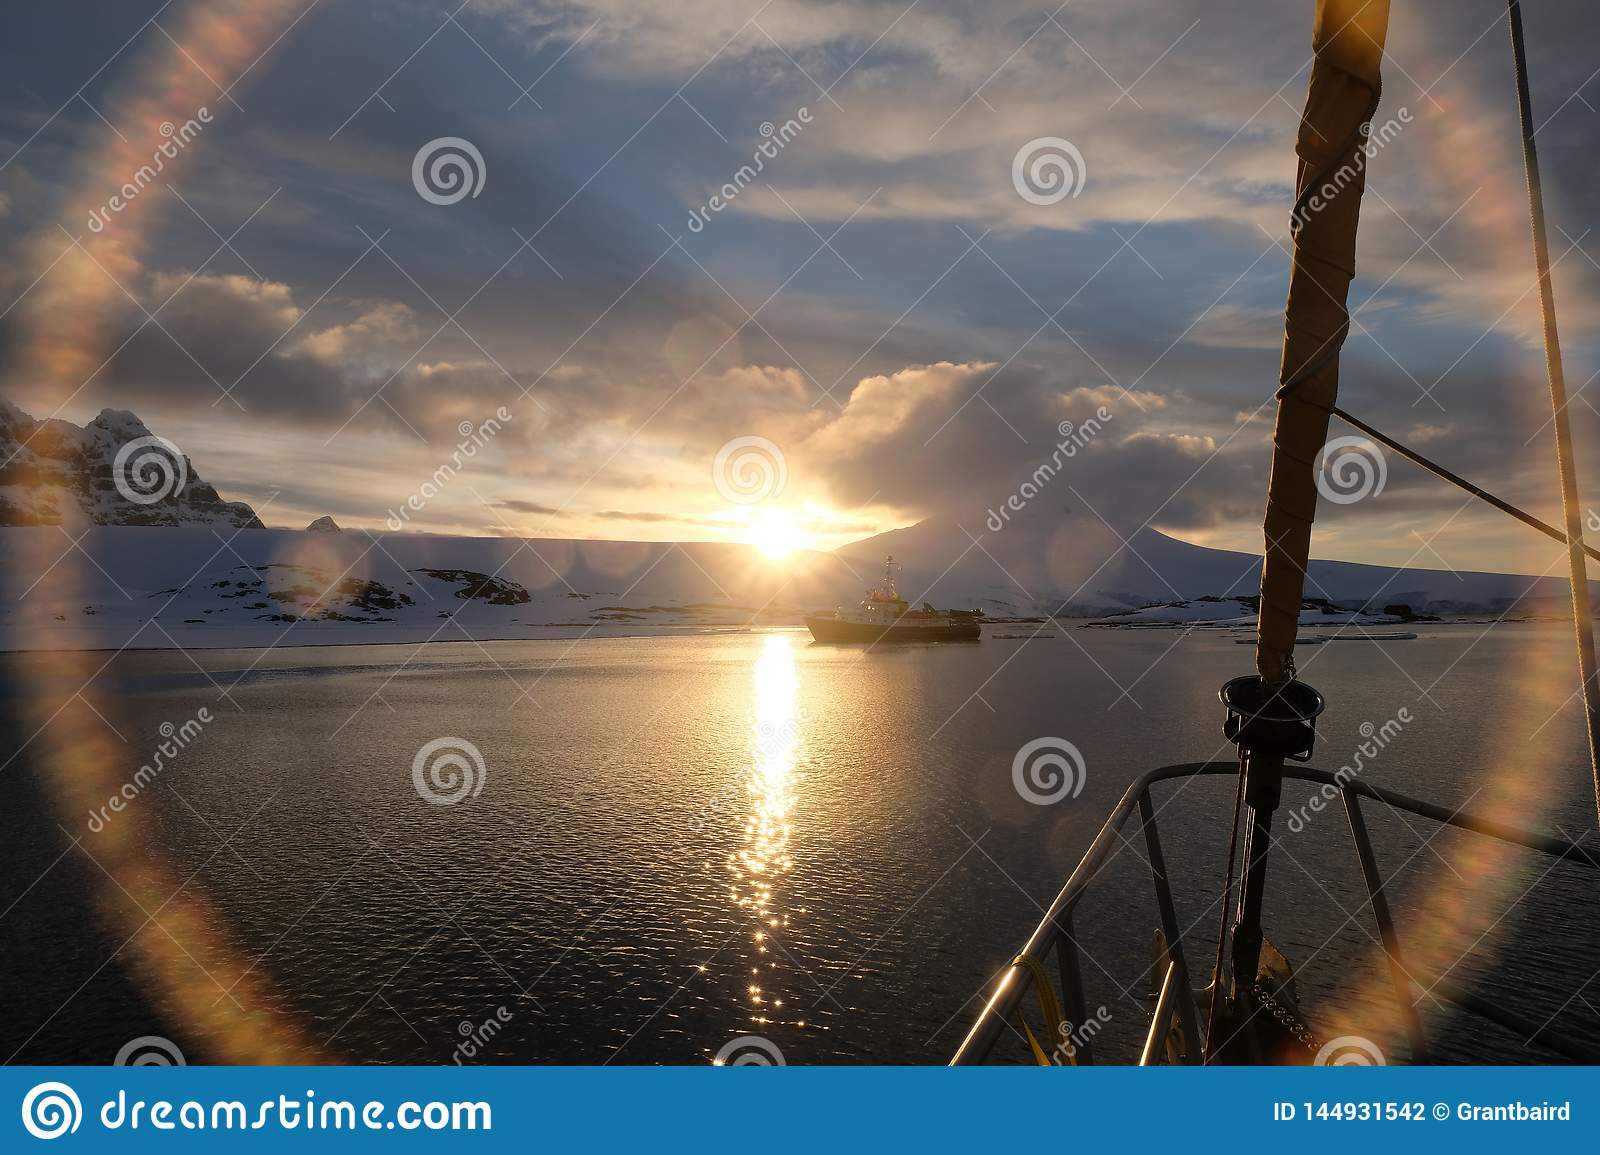 Antarctica calm midnight sunset lens flare from sailboat